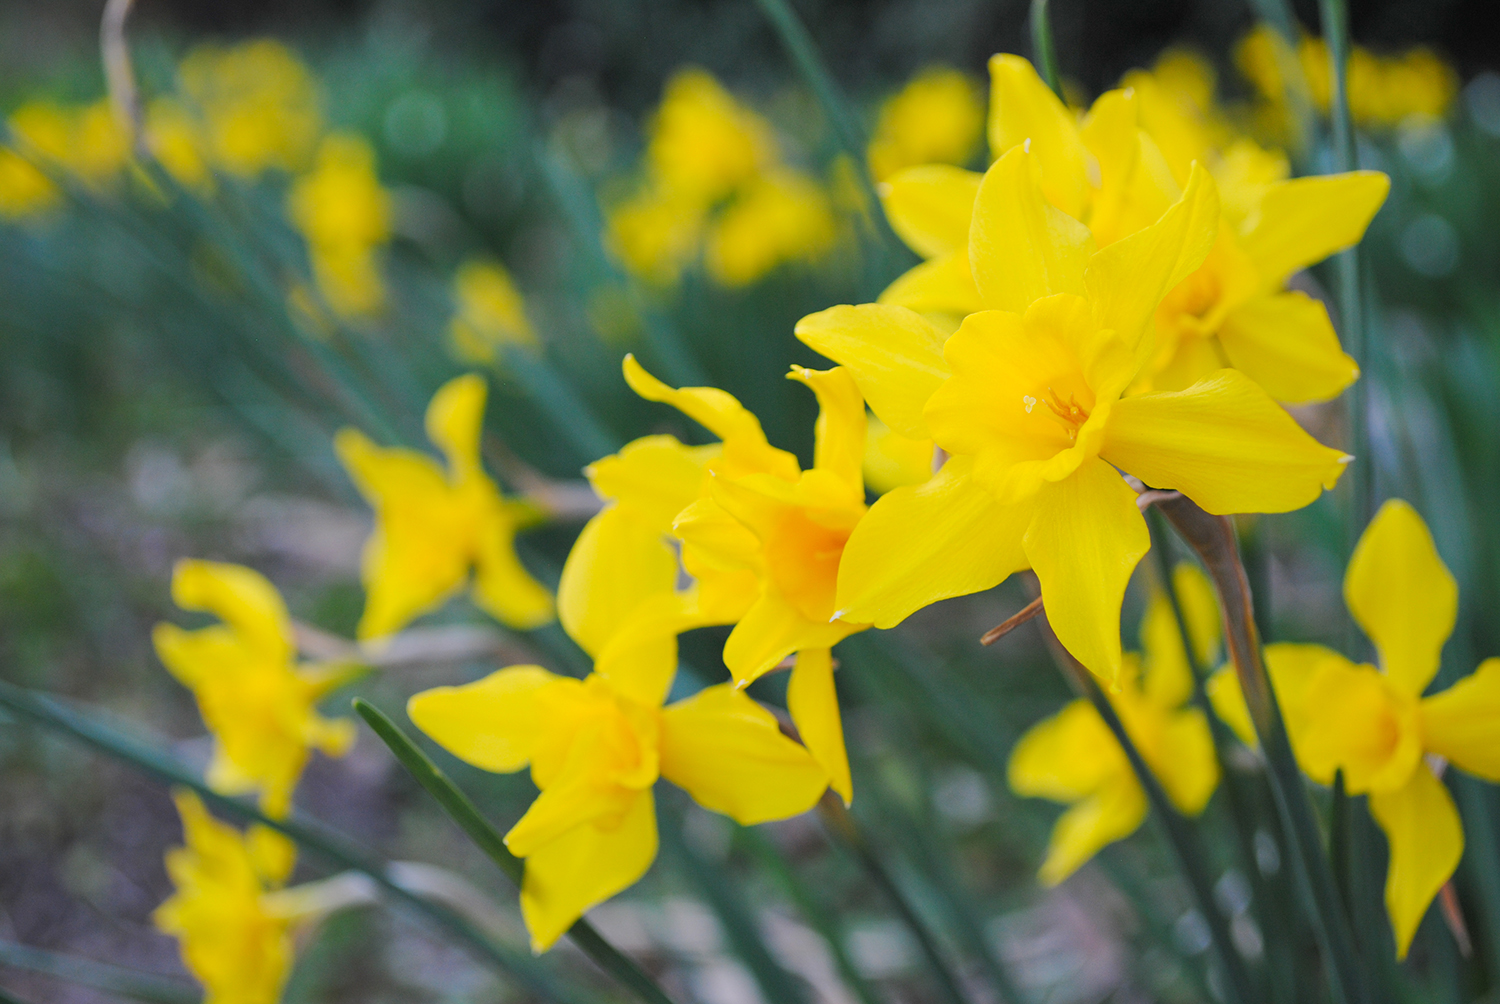 Narcissus × odorus, a vigorous hybrid for the southeast originating from crosses of Narcissus pseudonarcissus and Narcissus jonquilla. Occasionally, these geophytes will throw up flowers that have less than six petals. Do you spy any in the photograph above?